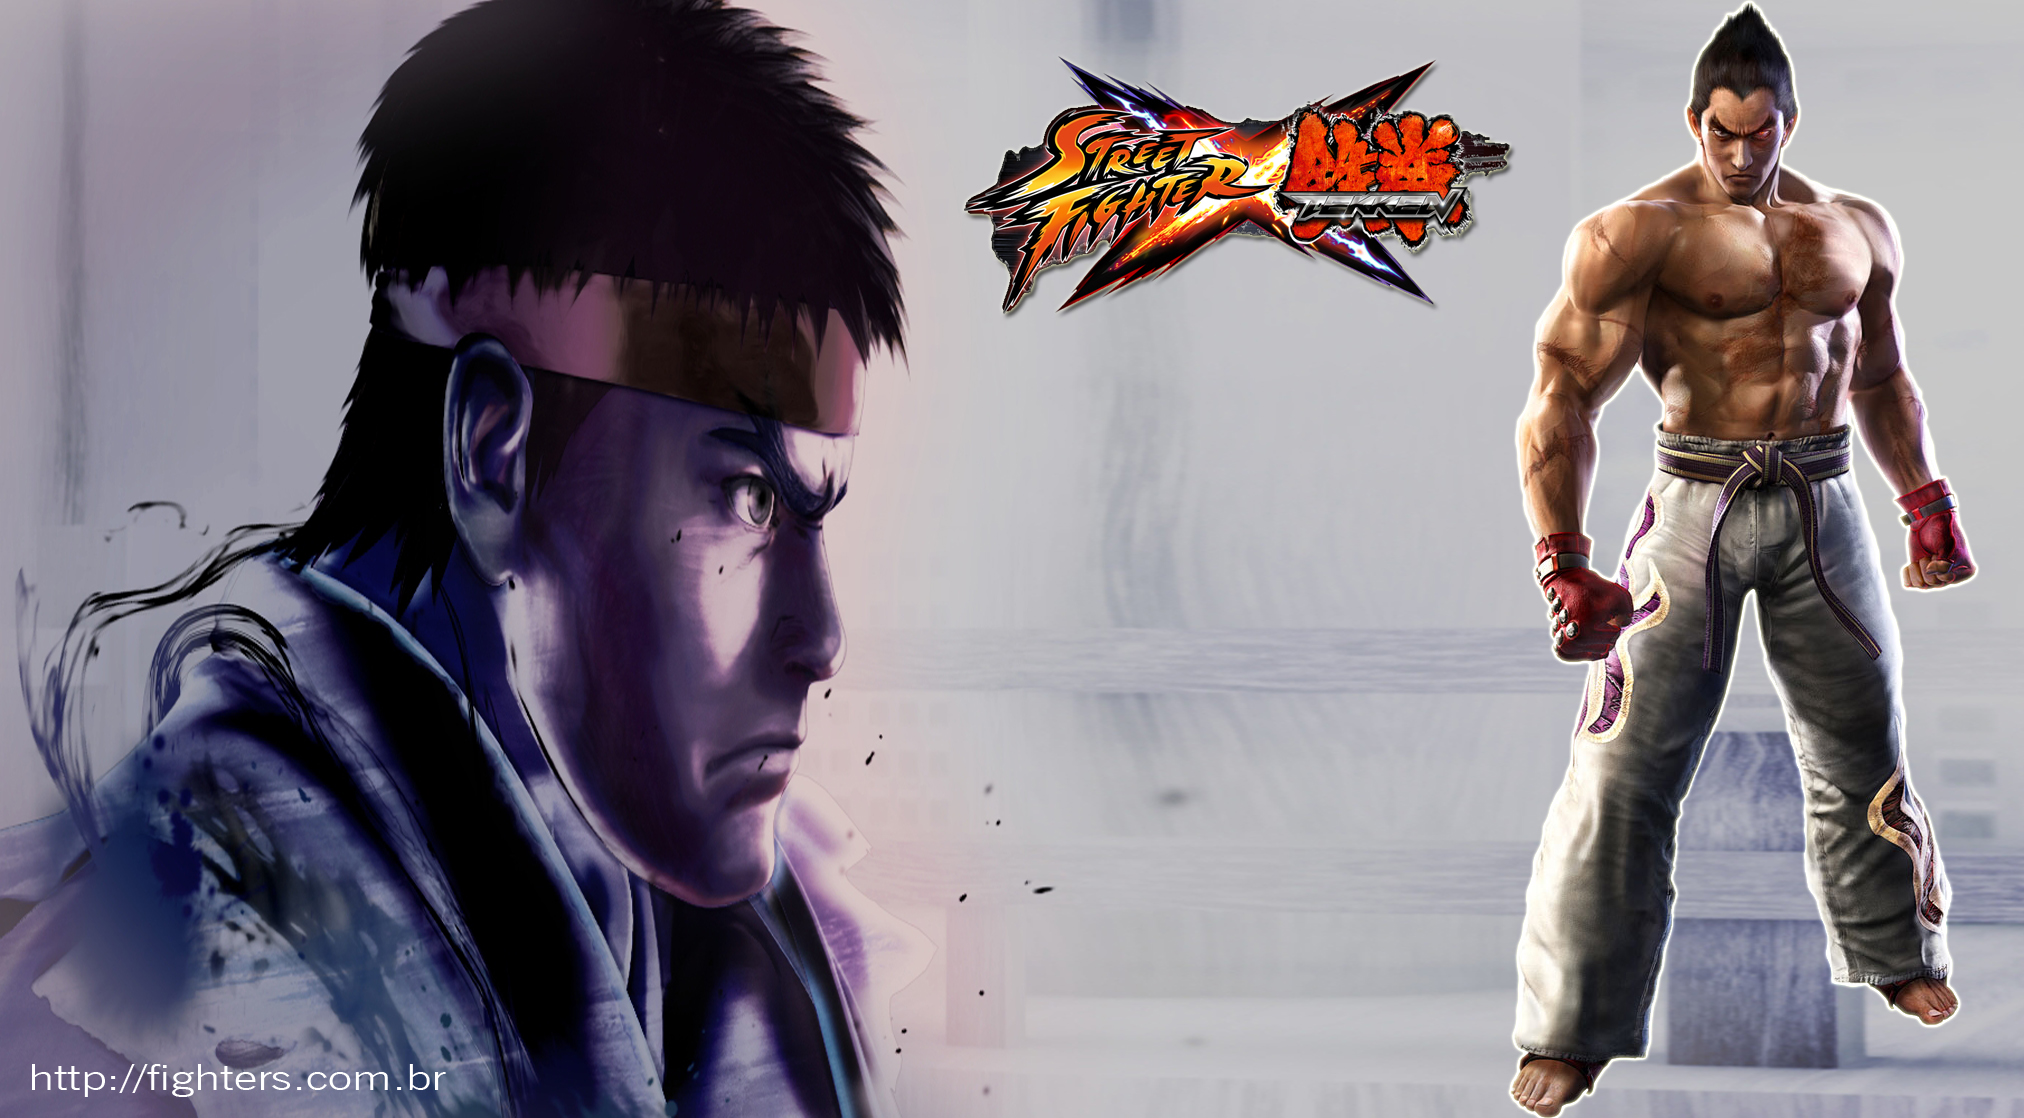 Street Fighter Vs Tekken 2 By Fightersnetwork On Deviantart